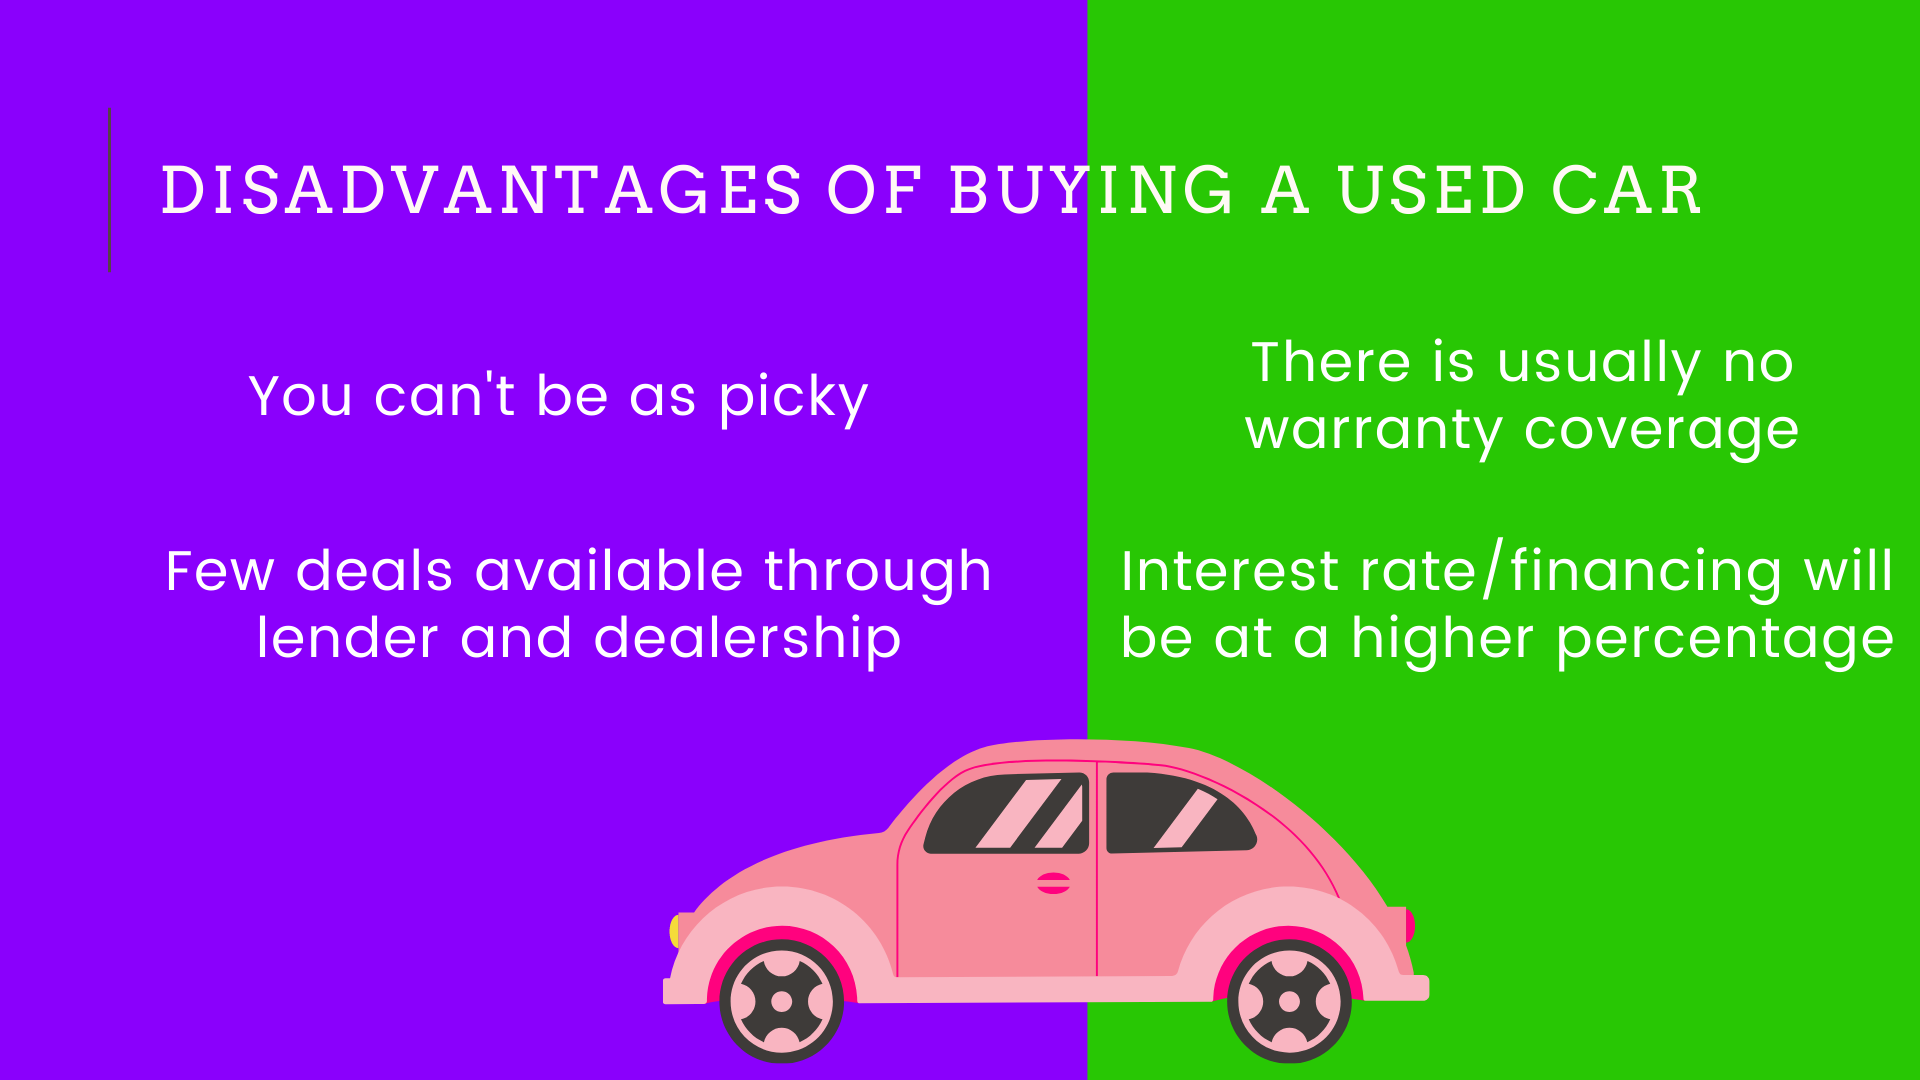 4: You can't be as picky. 5:There is usually no warranty coverage. 6:Few deals available through lender and dealership. 7:Interest rate/financing will be at a higher percentage.